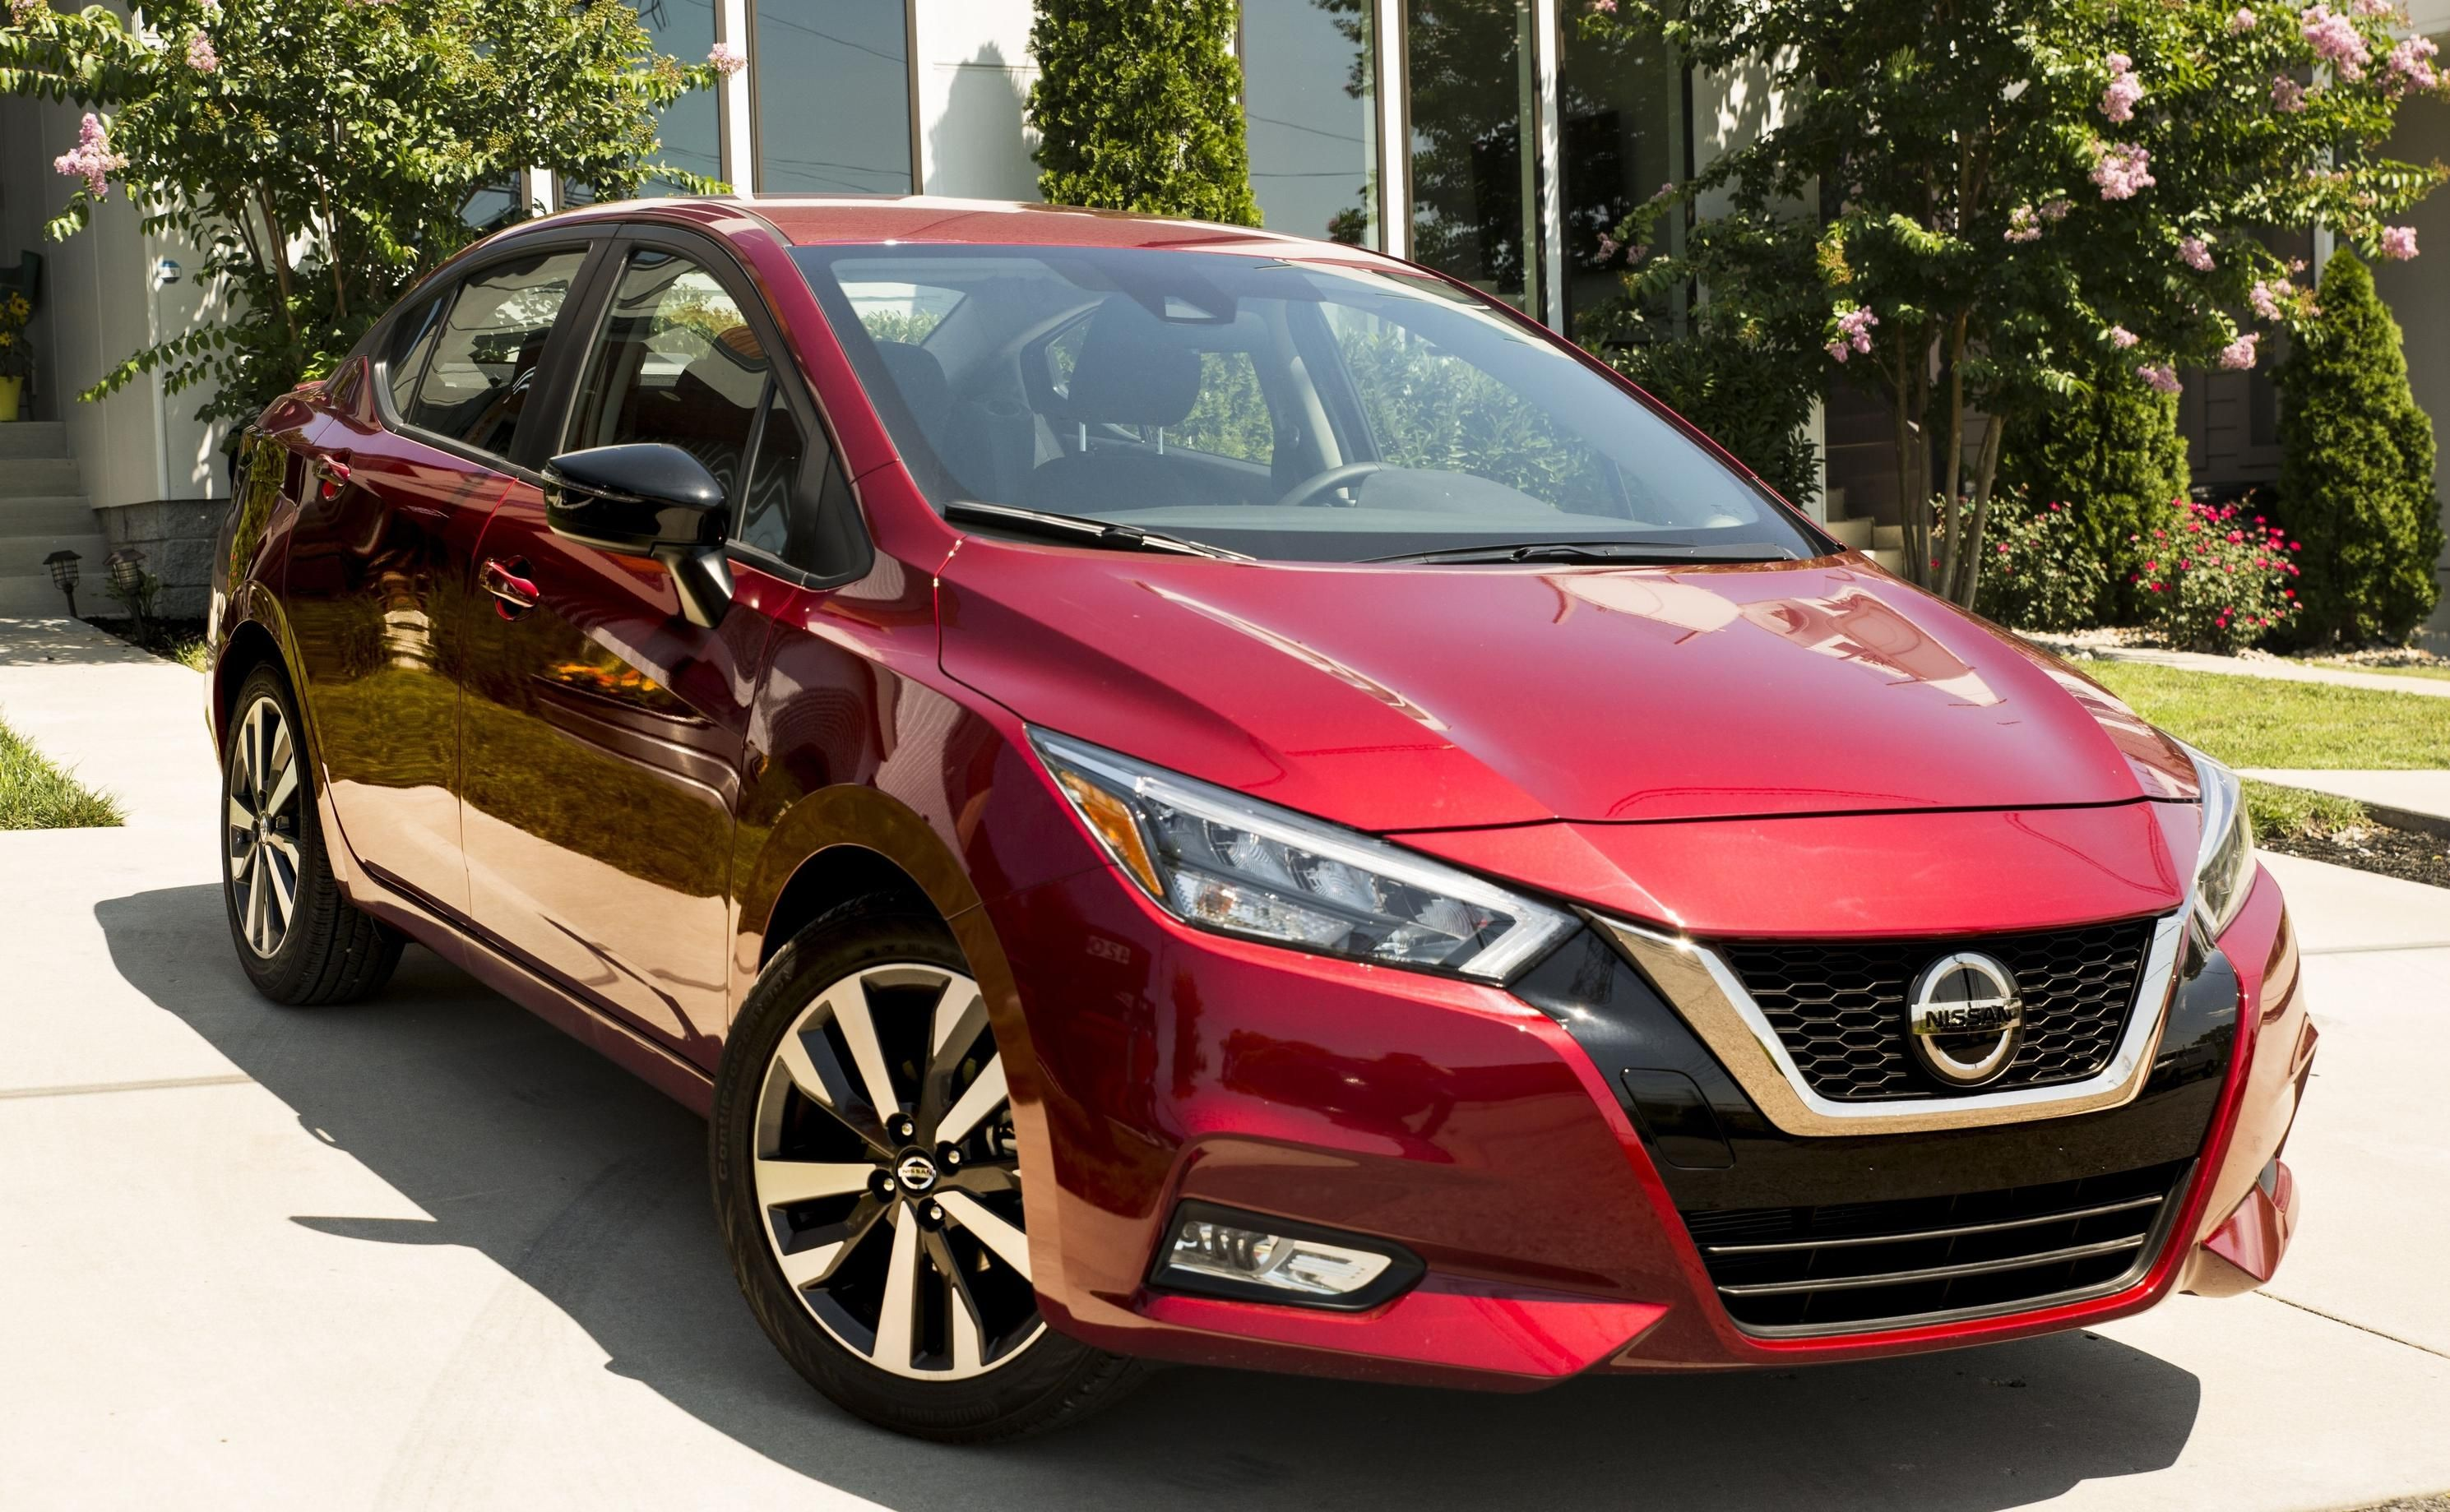 Car Review Nissan Versa Gets Upgrade But Don T Expect Miracles In 2020 Nissan Versa Nissan Car